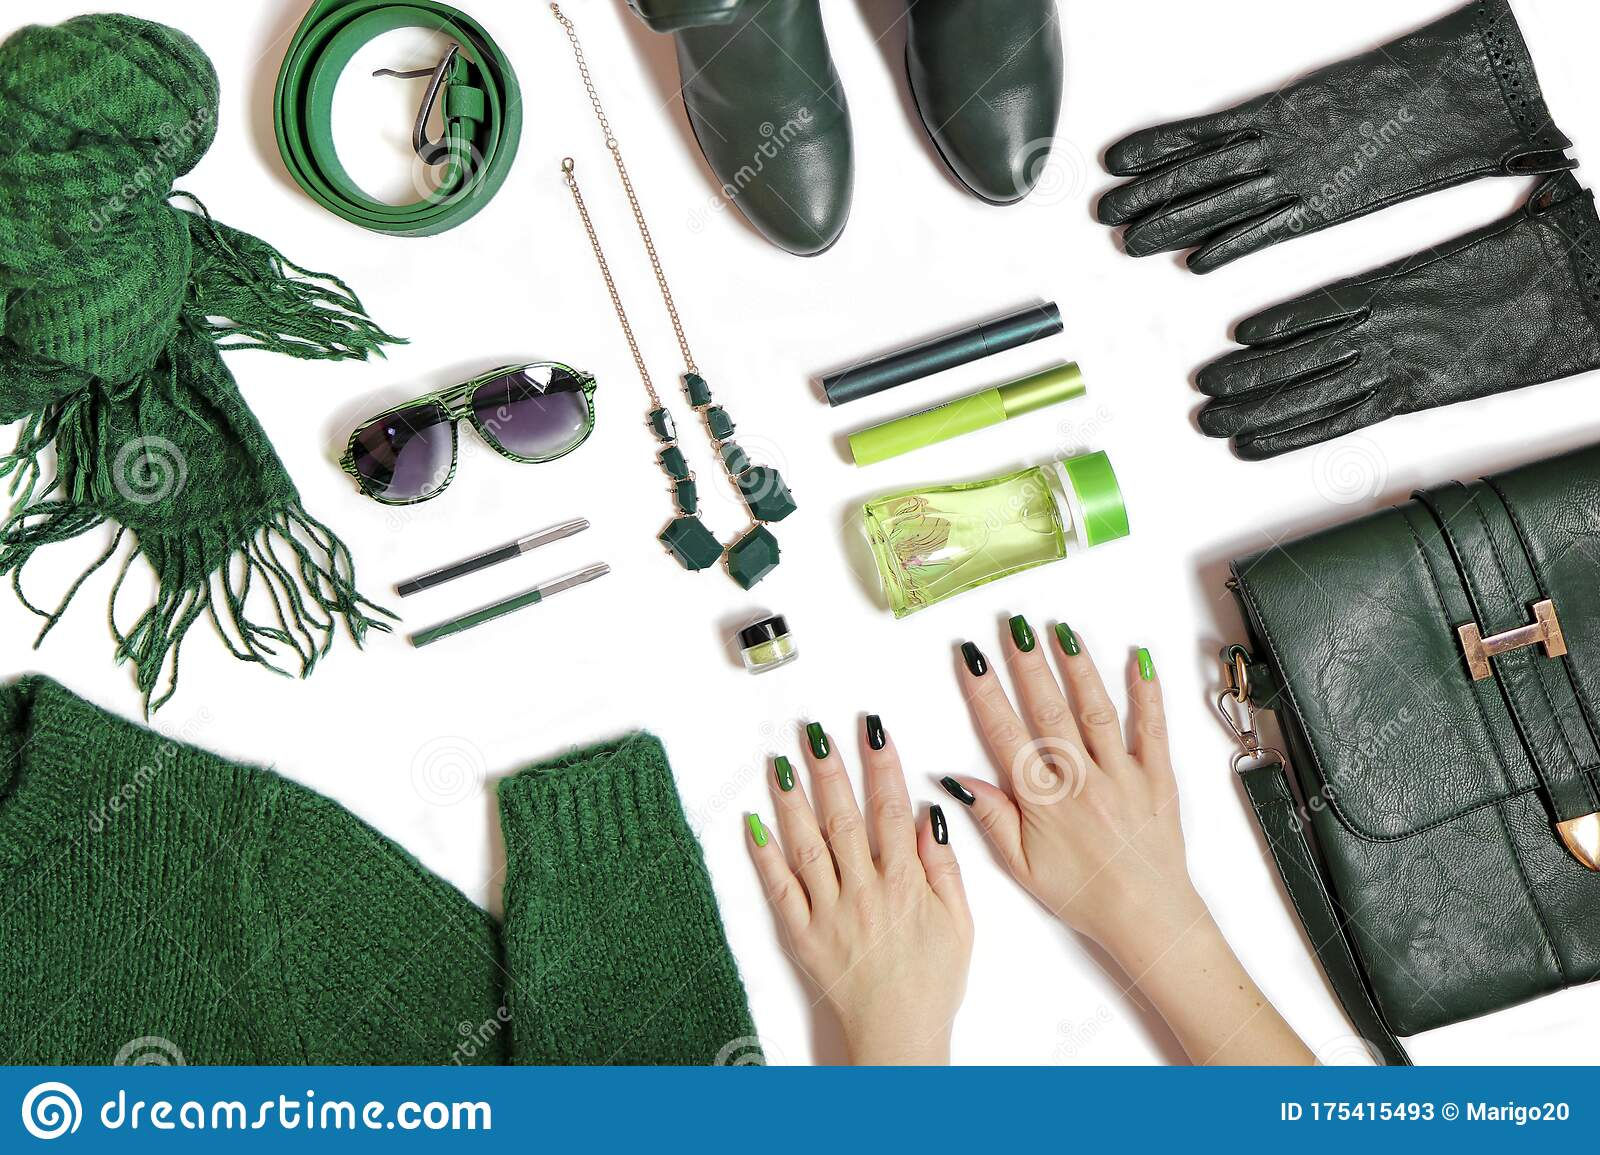 Fashionable Green Manicure On Long Nails And Stylish Accessories Stock Image Image Of Design Nail 175415493